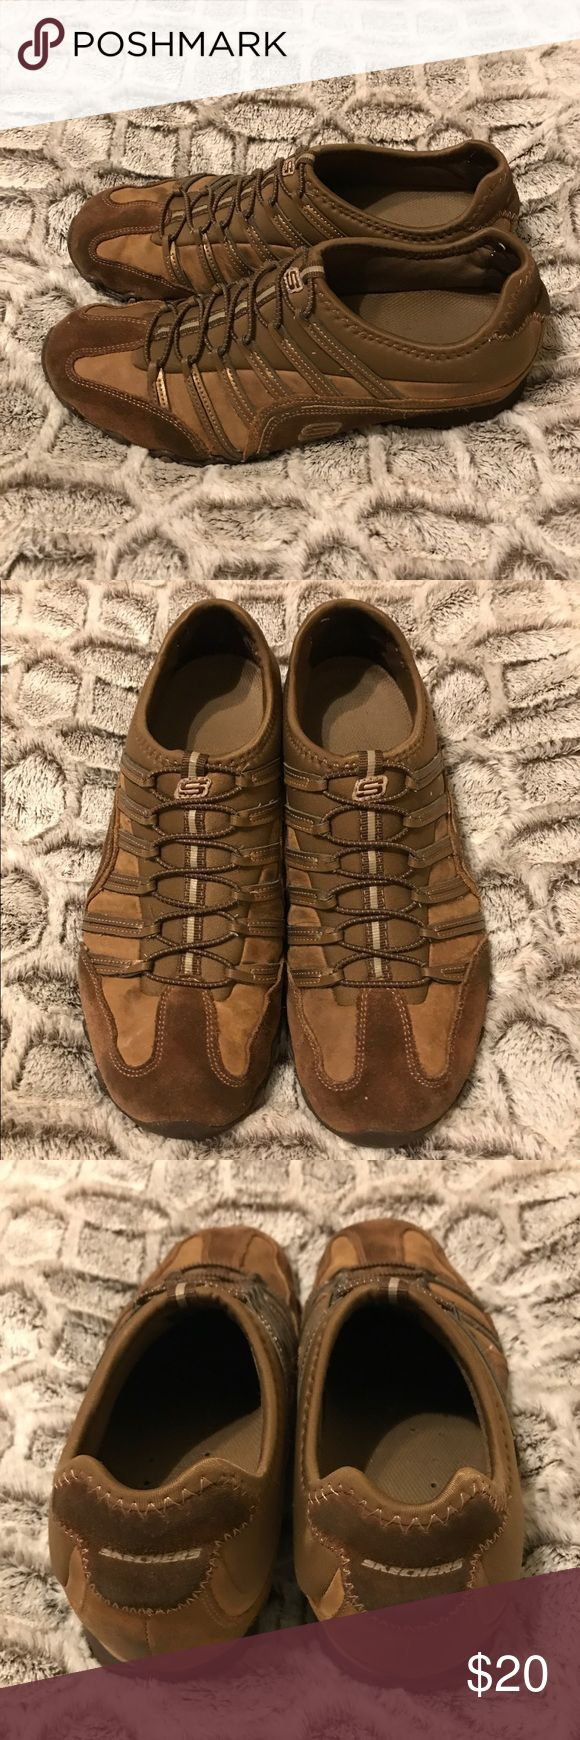 Skechers Sneakers Women's Skechers Sneakers in Shades of Brown with Faux laces. GUC with minimal wear. Skechers Shoes Sneakers